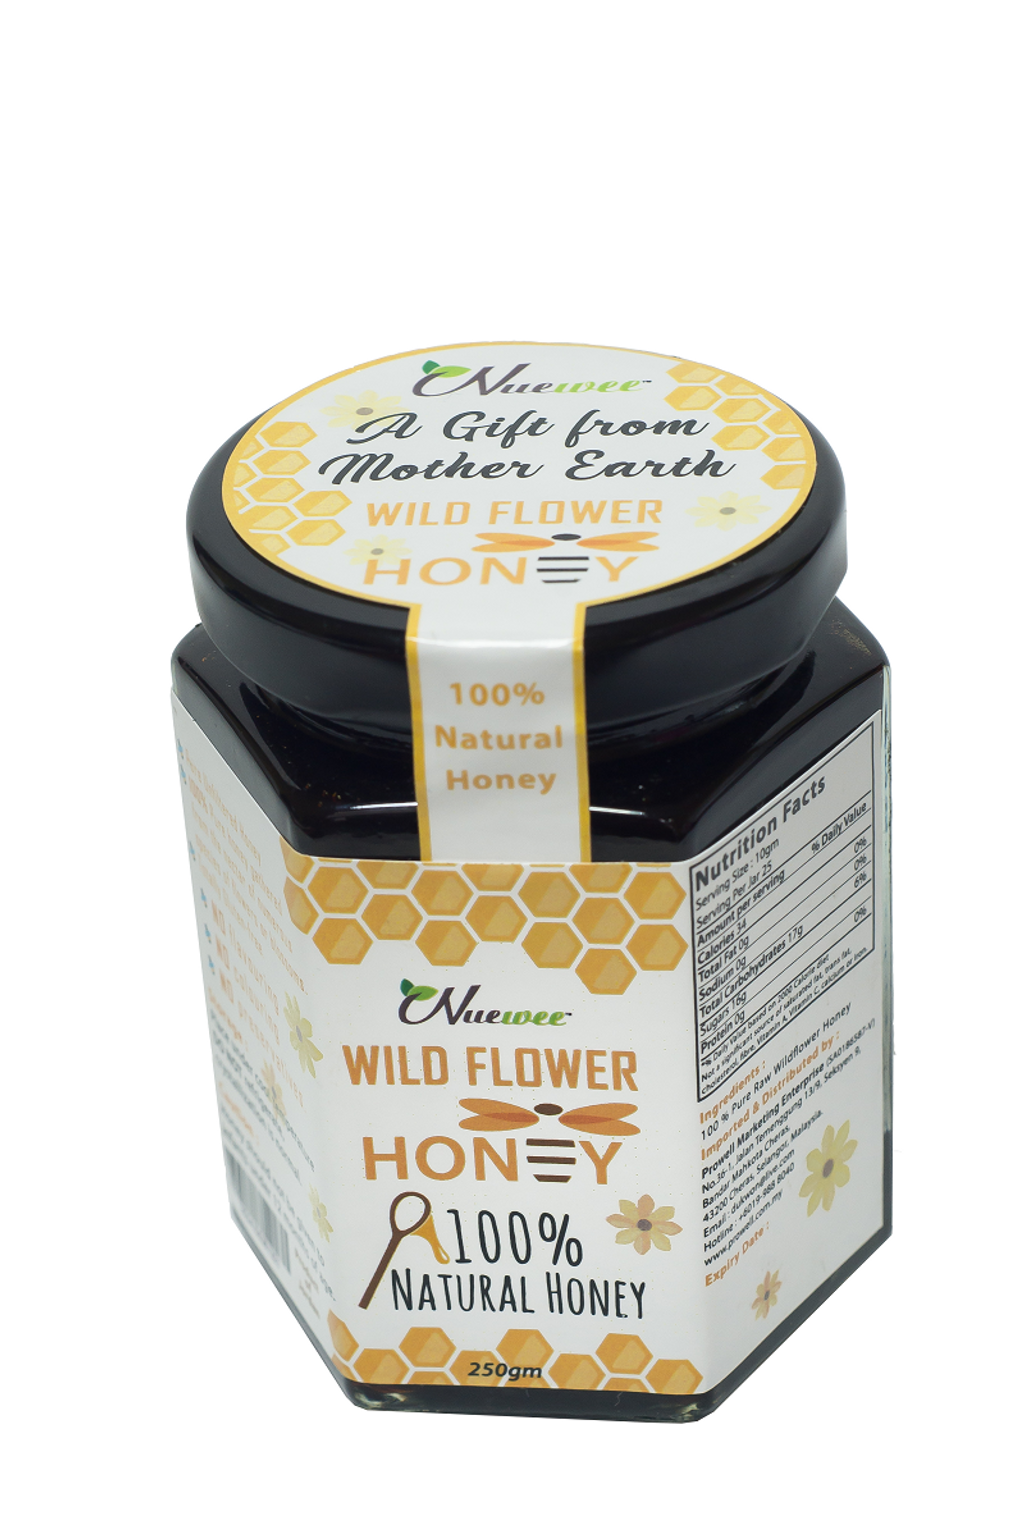 Nuewee-Natural-Wold-Flower-Honey-up.png